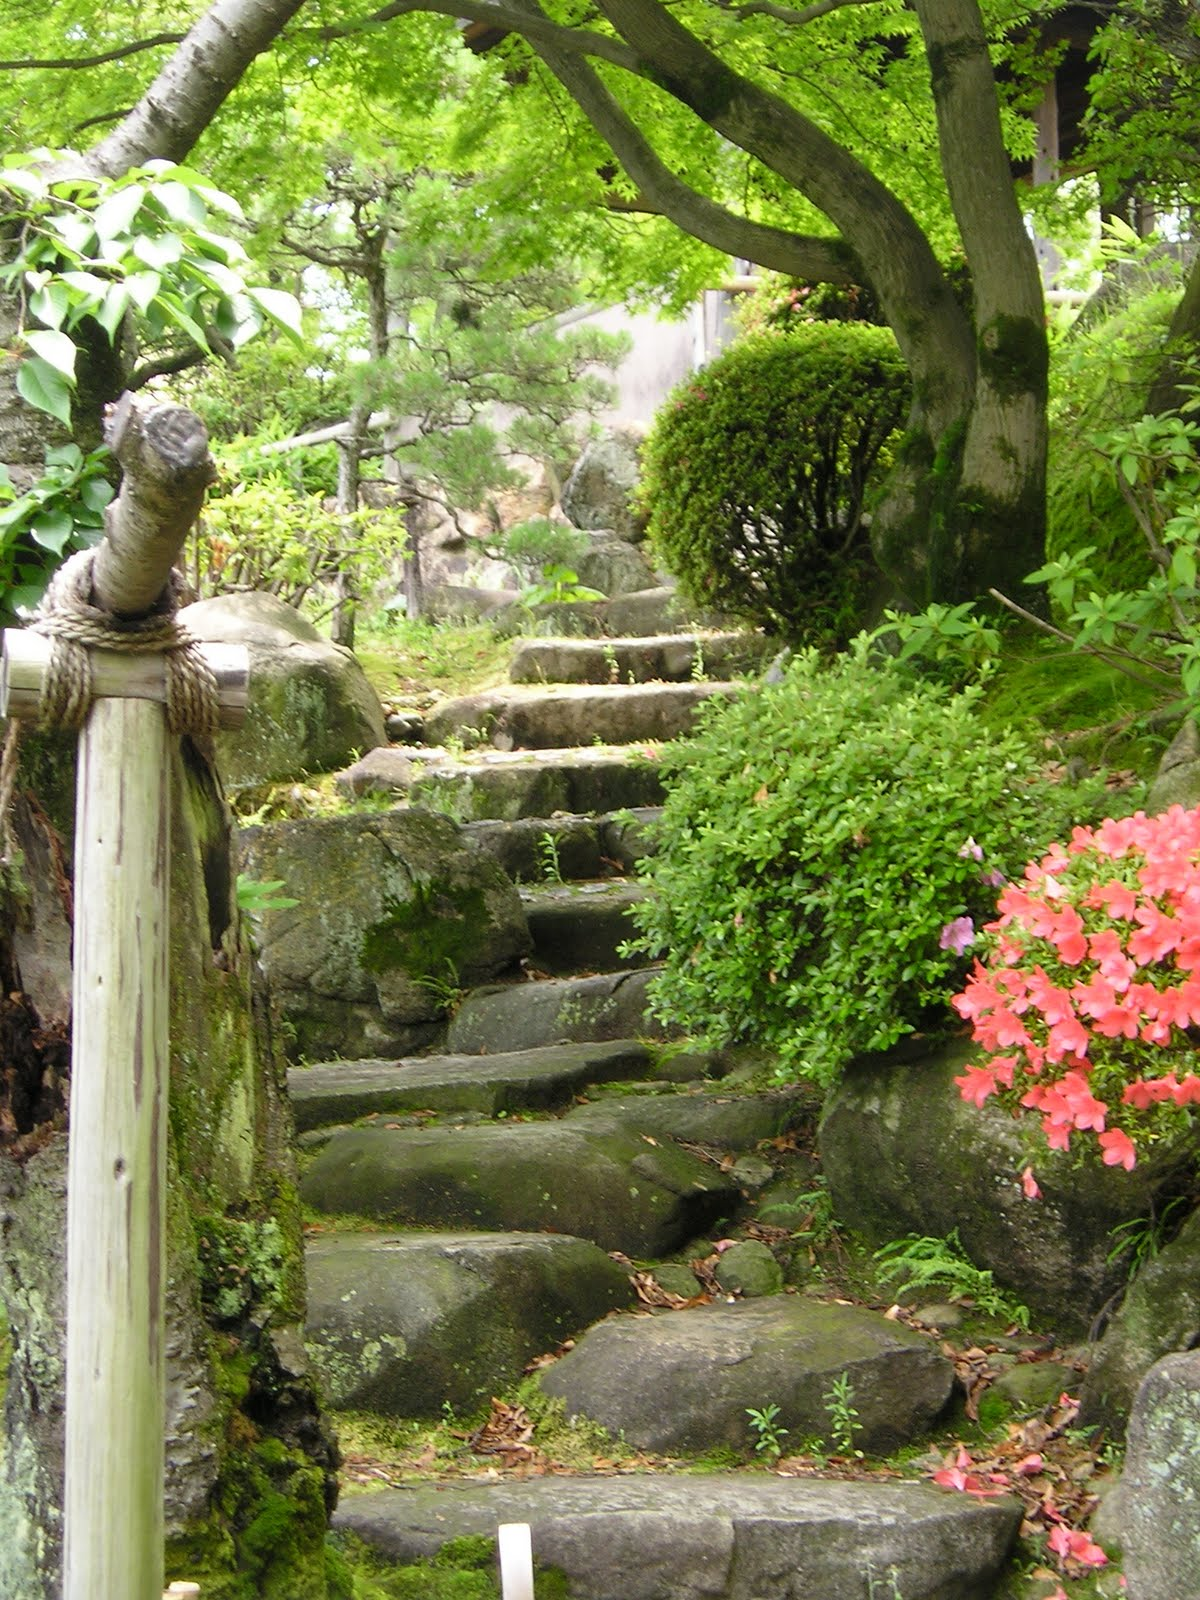 The quest for all knowledge japan has pretty gardens for A japanese garden